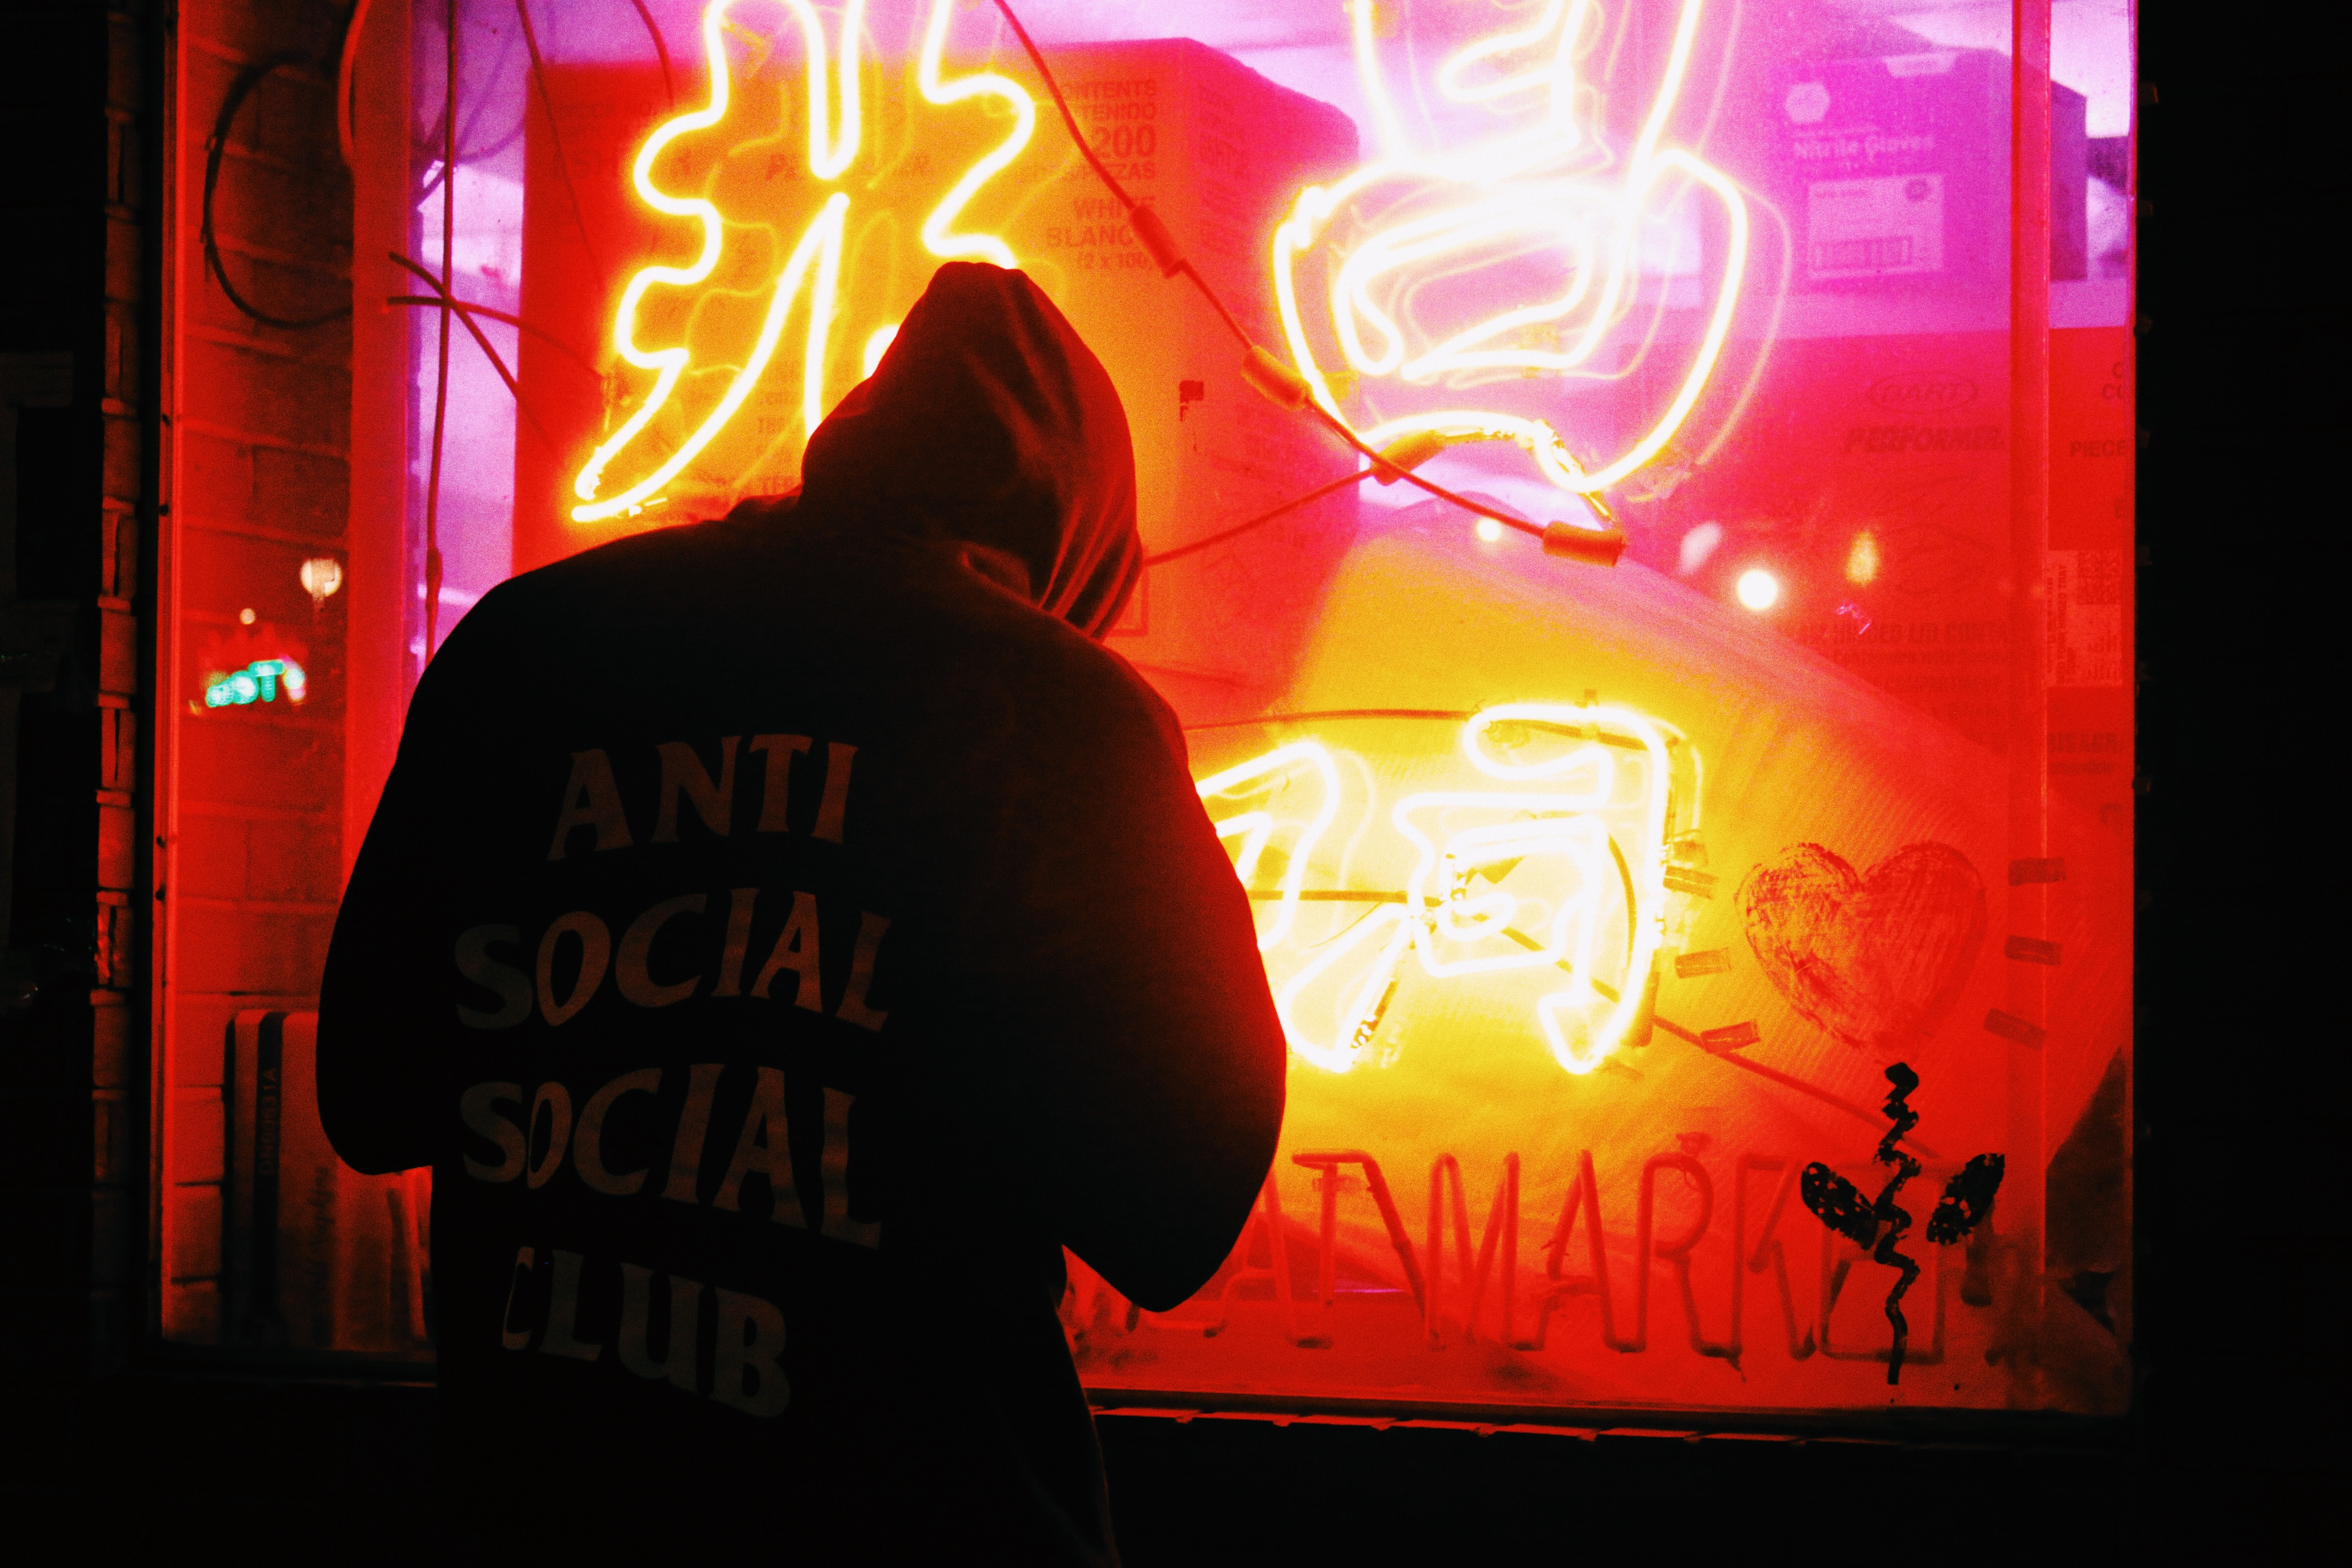 Man in hoody with anti social slogan standing outside red neon display in store window